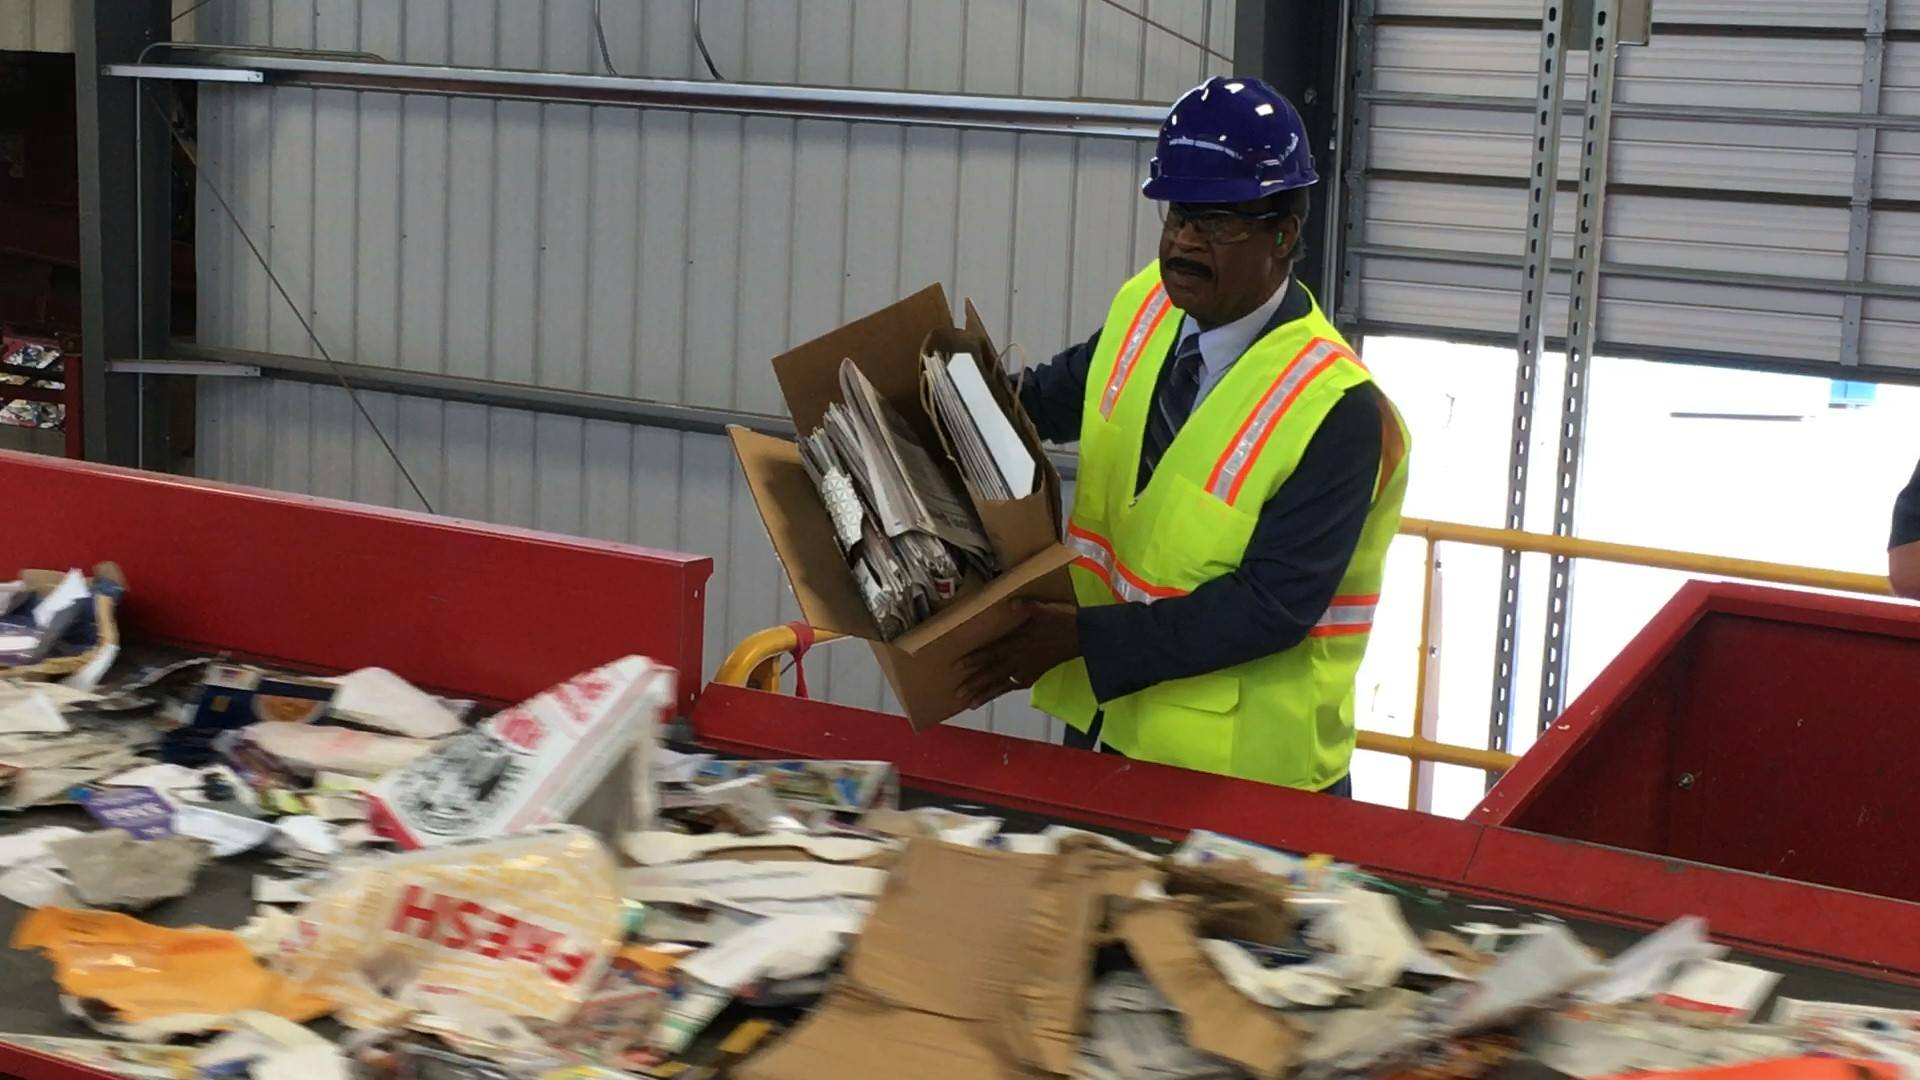 A step closer to 70%: the County opened a new mixed paper processing facility at the Recycling Center